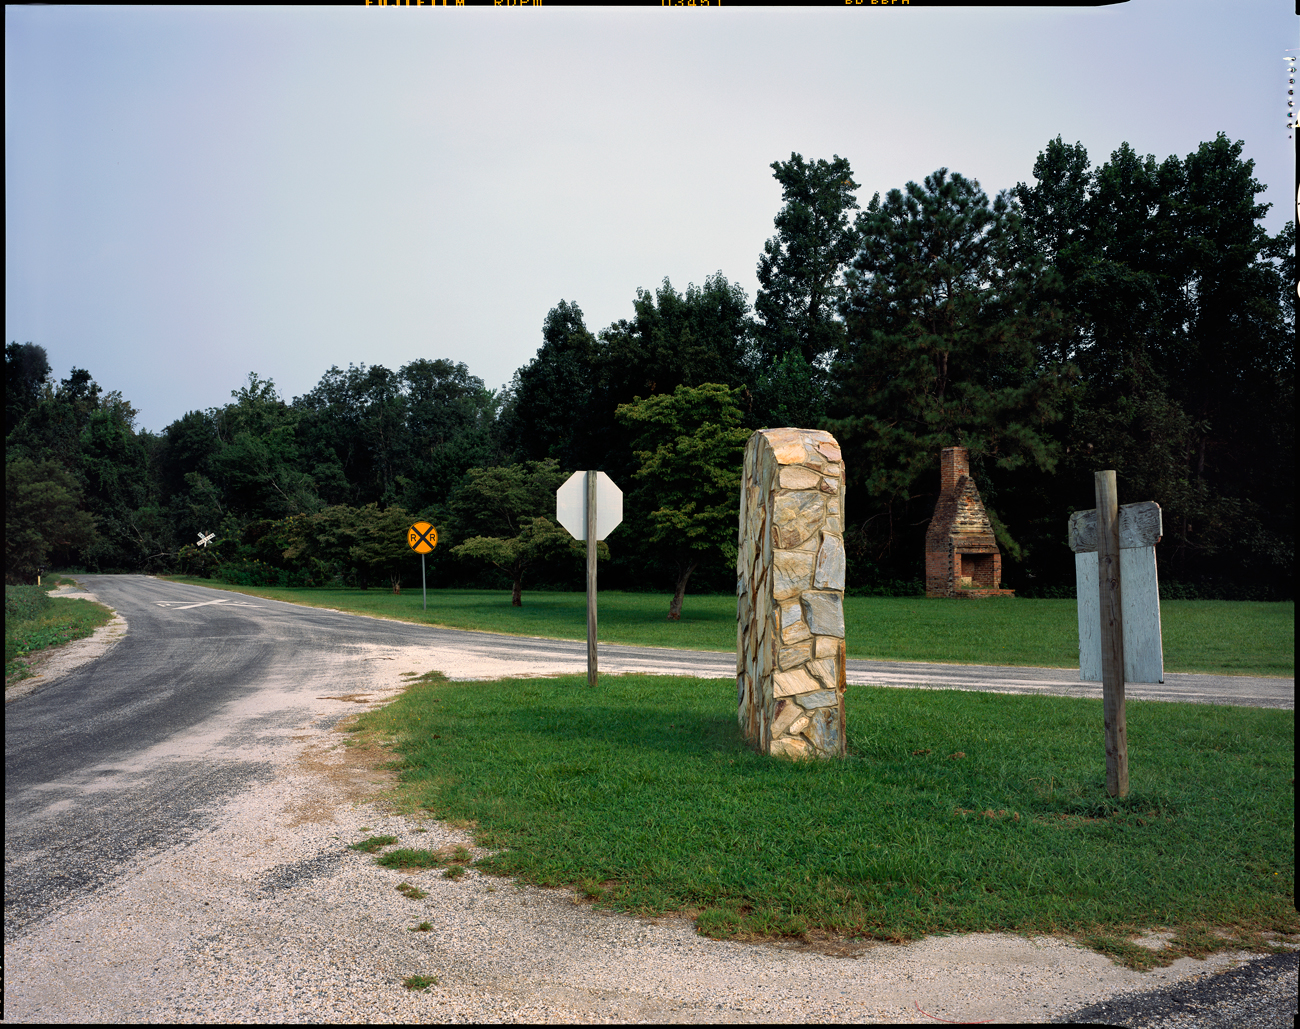 Entrance to the Pamunkey Indian Reservation, King William, Virginia 2006